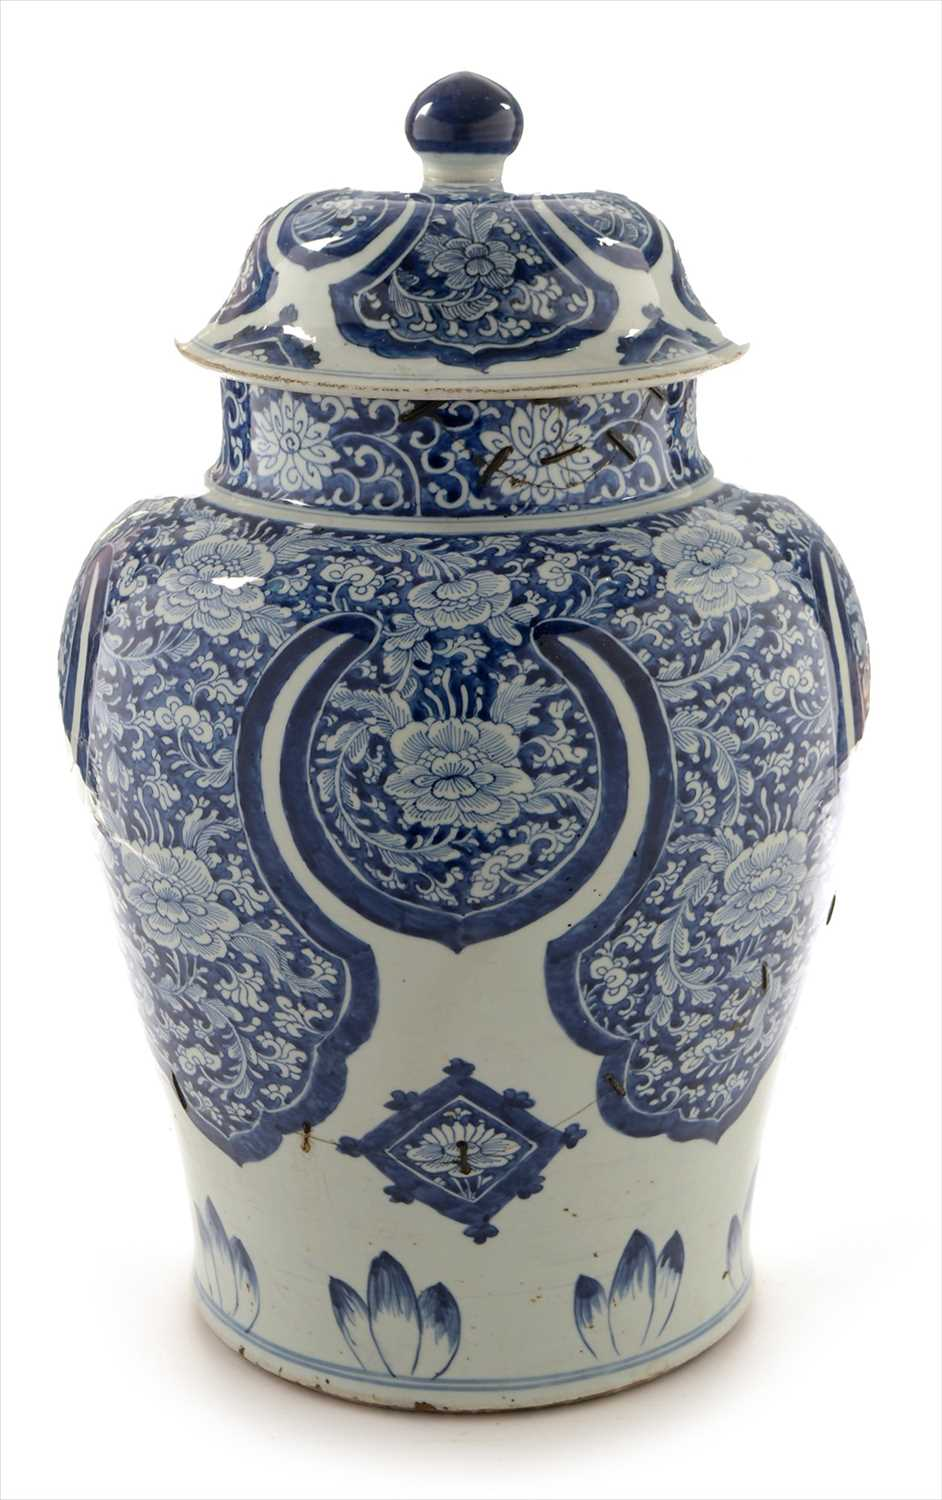 Lot 463-Chinese blue and white vase cover and stand